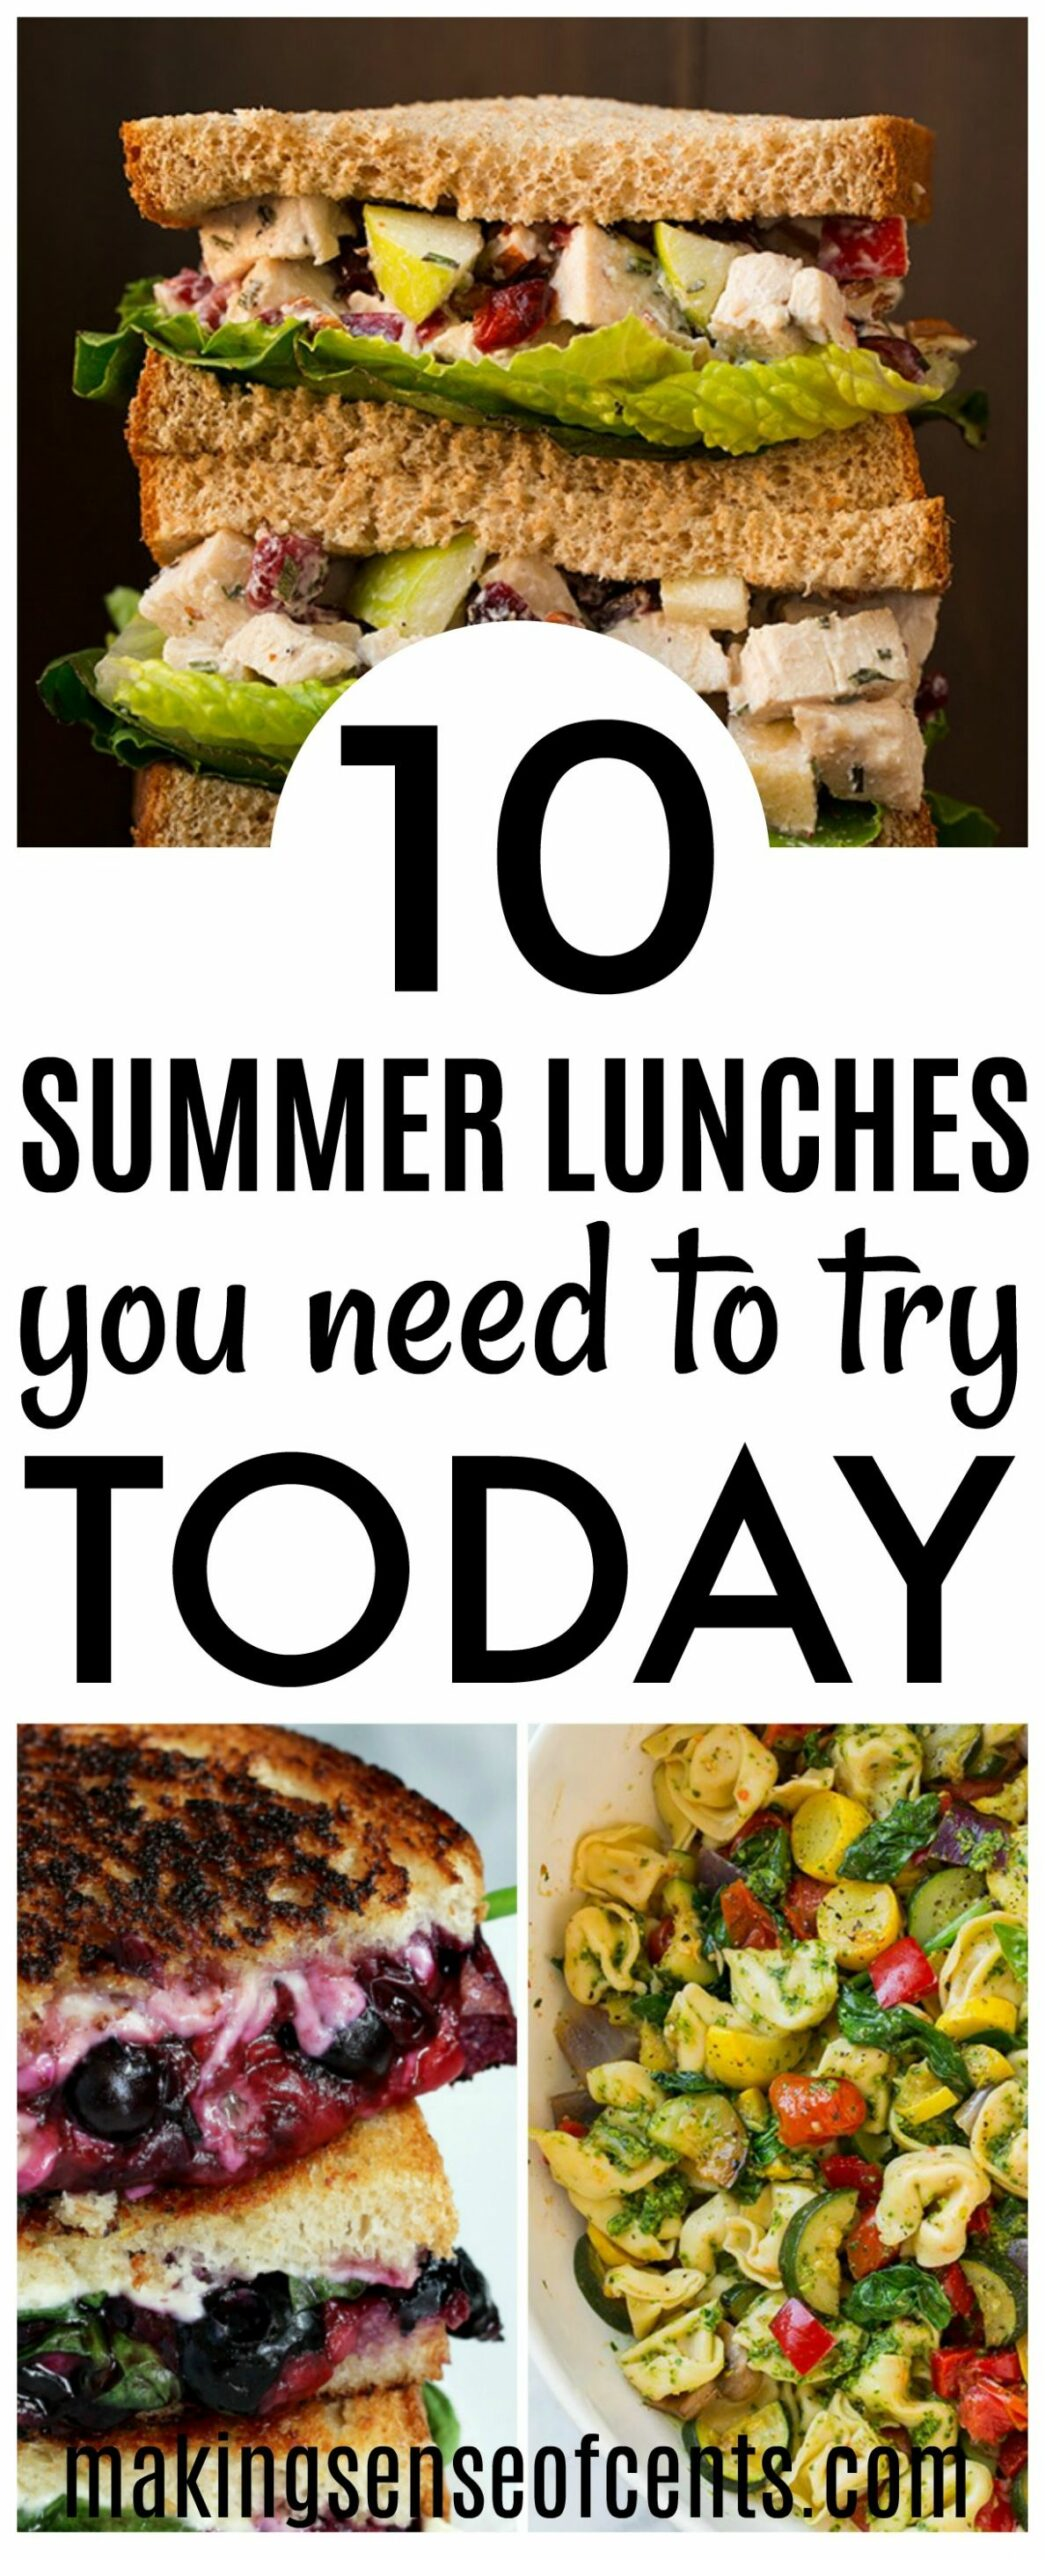 8 Delicious Summer Lunch Ideas - Summer Meals You Need To Make! - Recipes For Quick Summer Meals